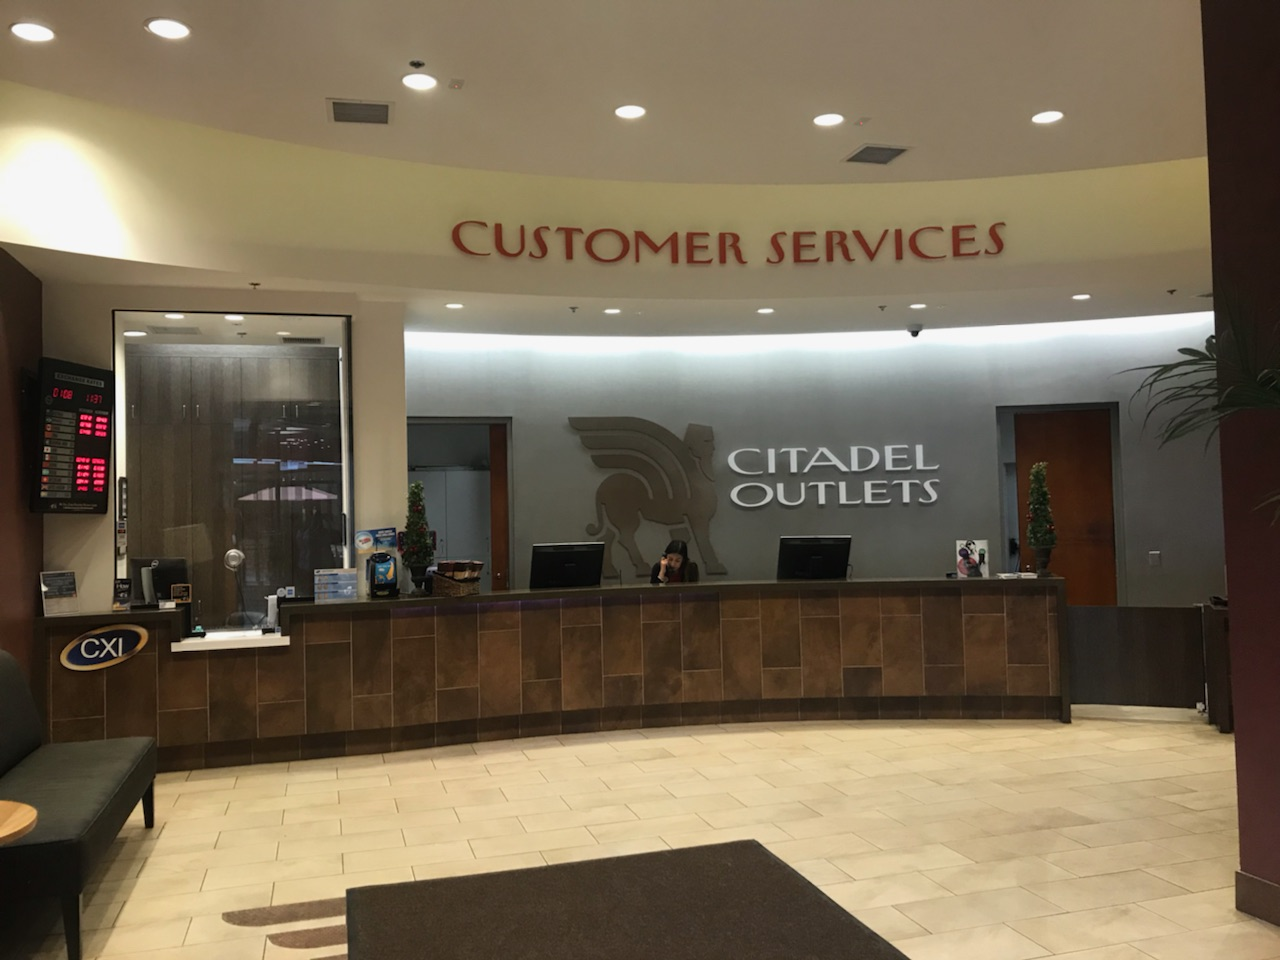 Currency Exchange International 100 Citadel Dr, Commerce, CA